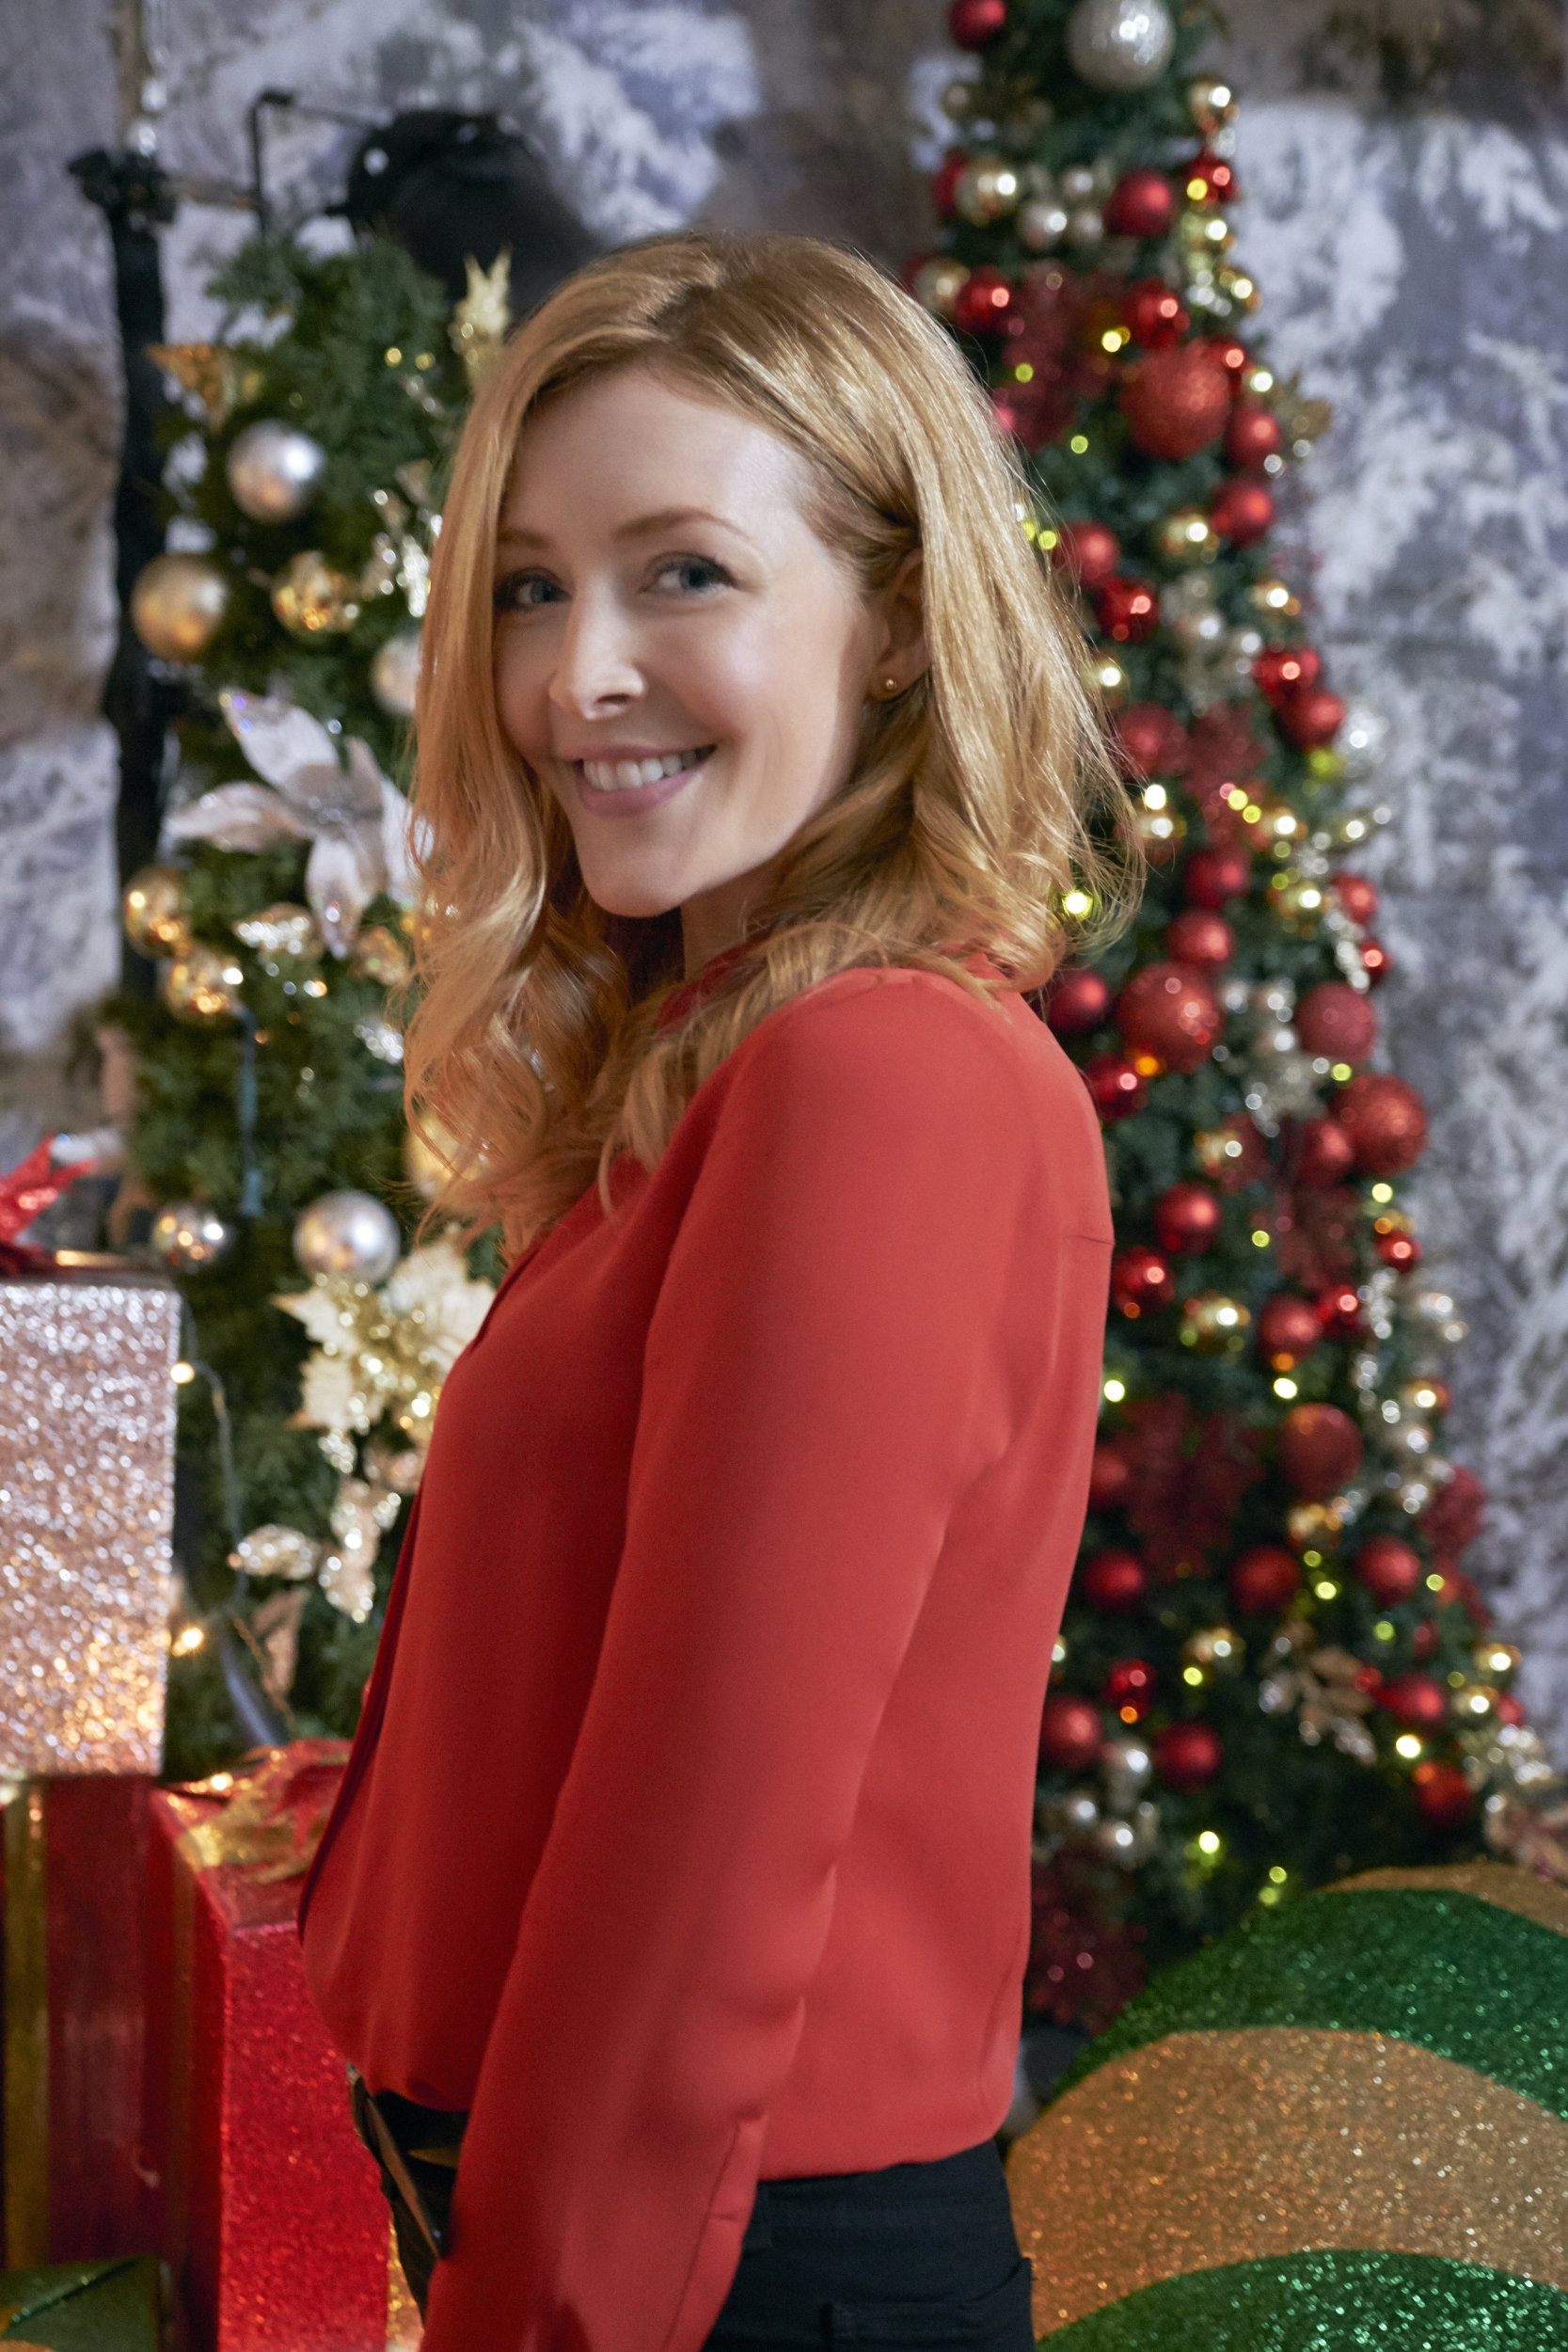 Welcome To Christmas.Jennifer Finnigan As Madison On Welcome To Christmas